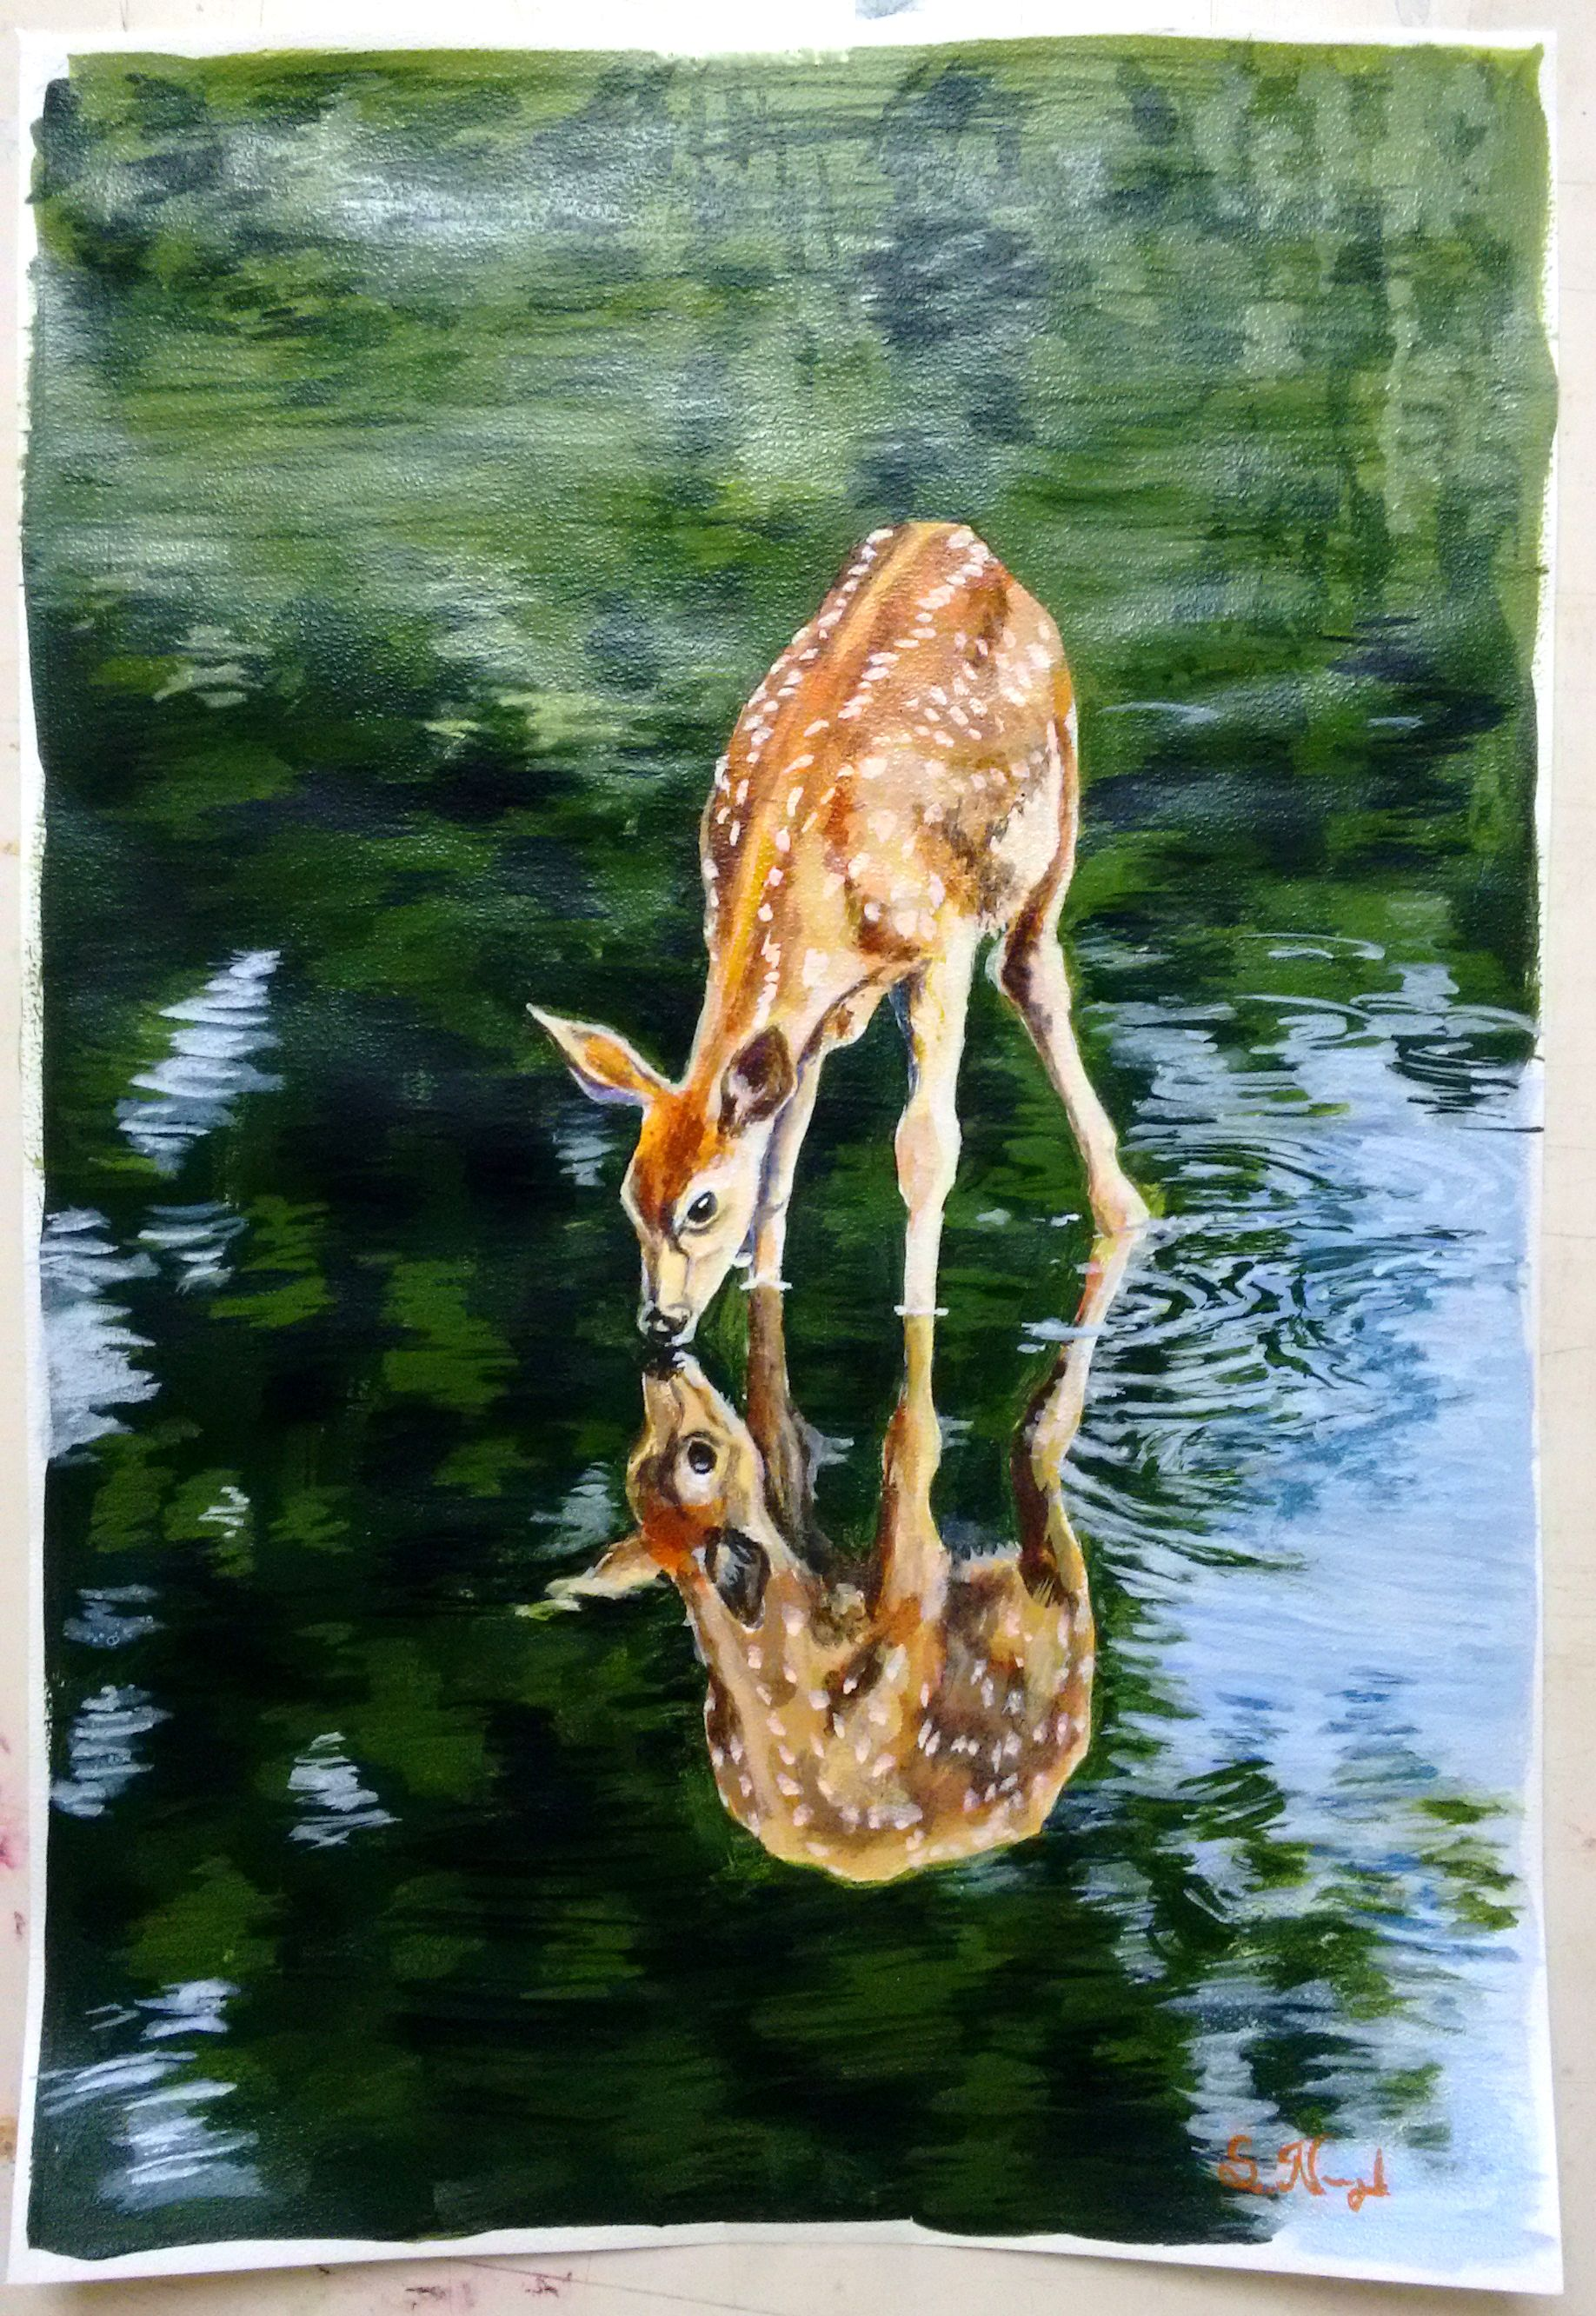 Deer Drinking Water Drawing : drinking, water, drawing, Drinks, Water, Forest, Stream, Painting,, Wildlife, Prints,, Painting